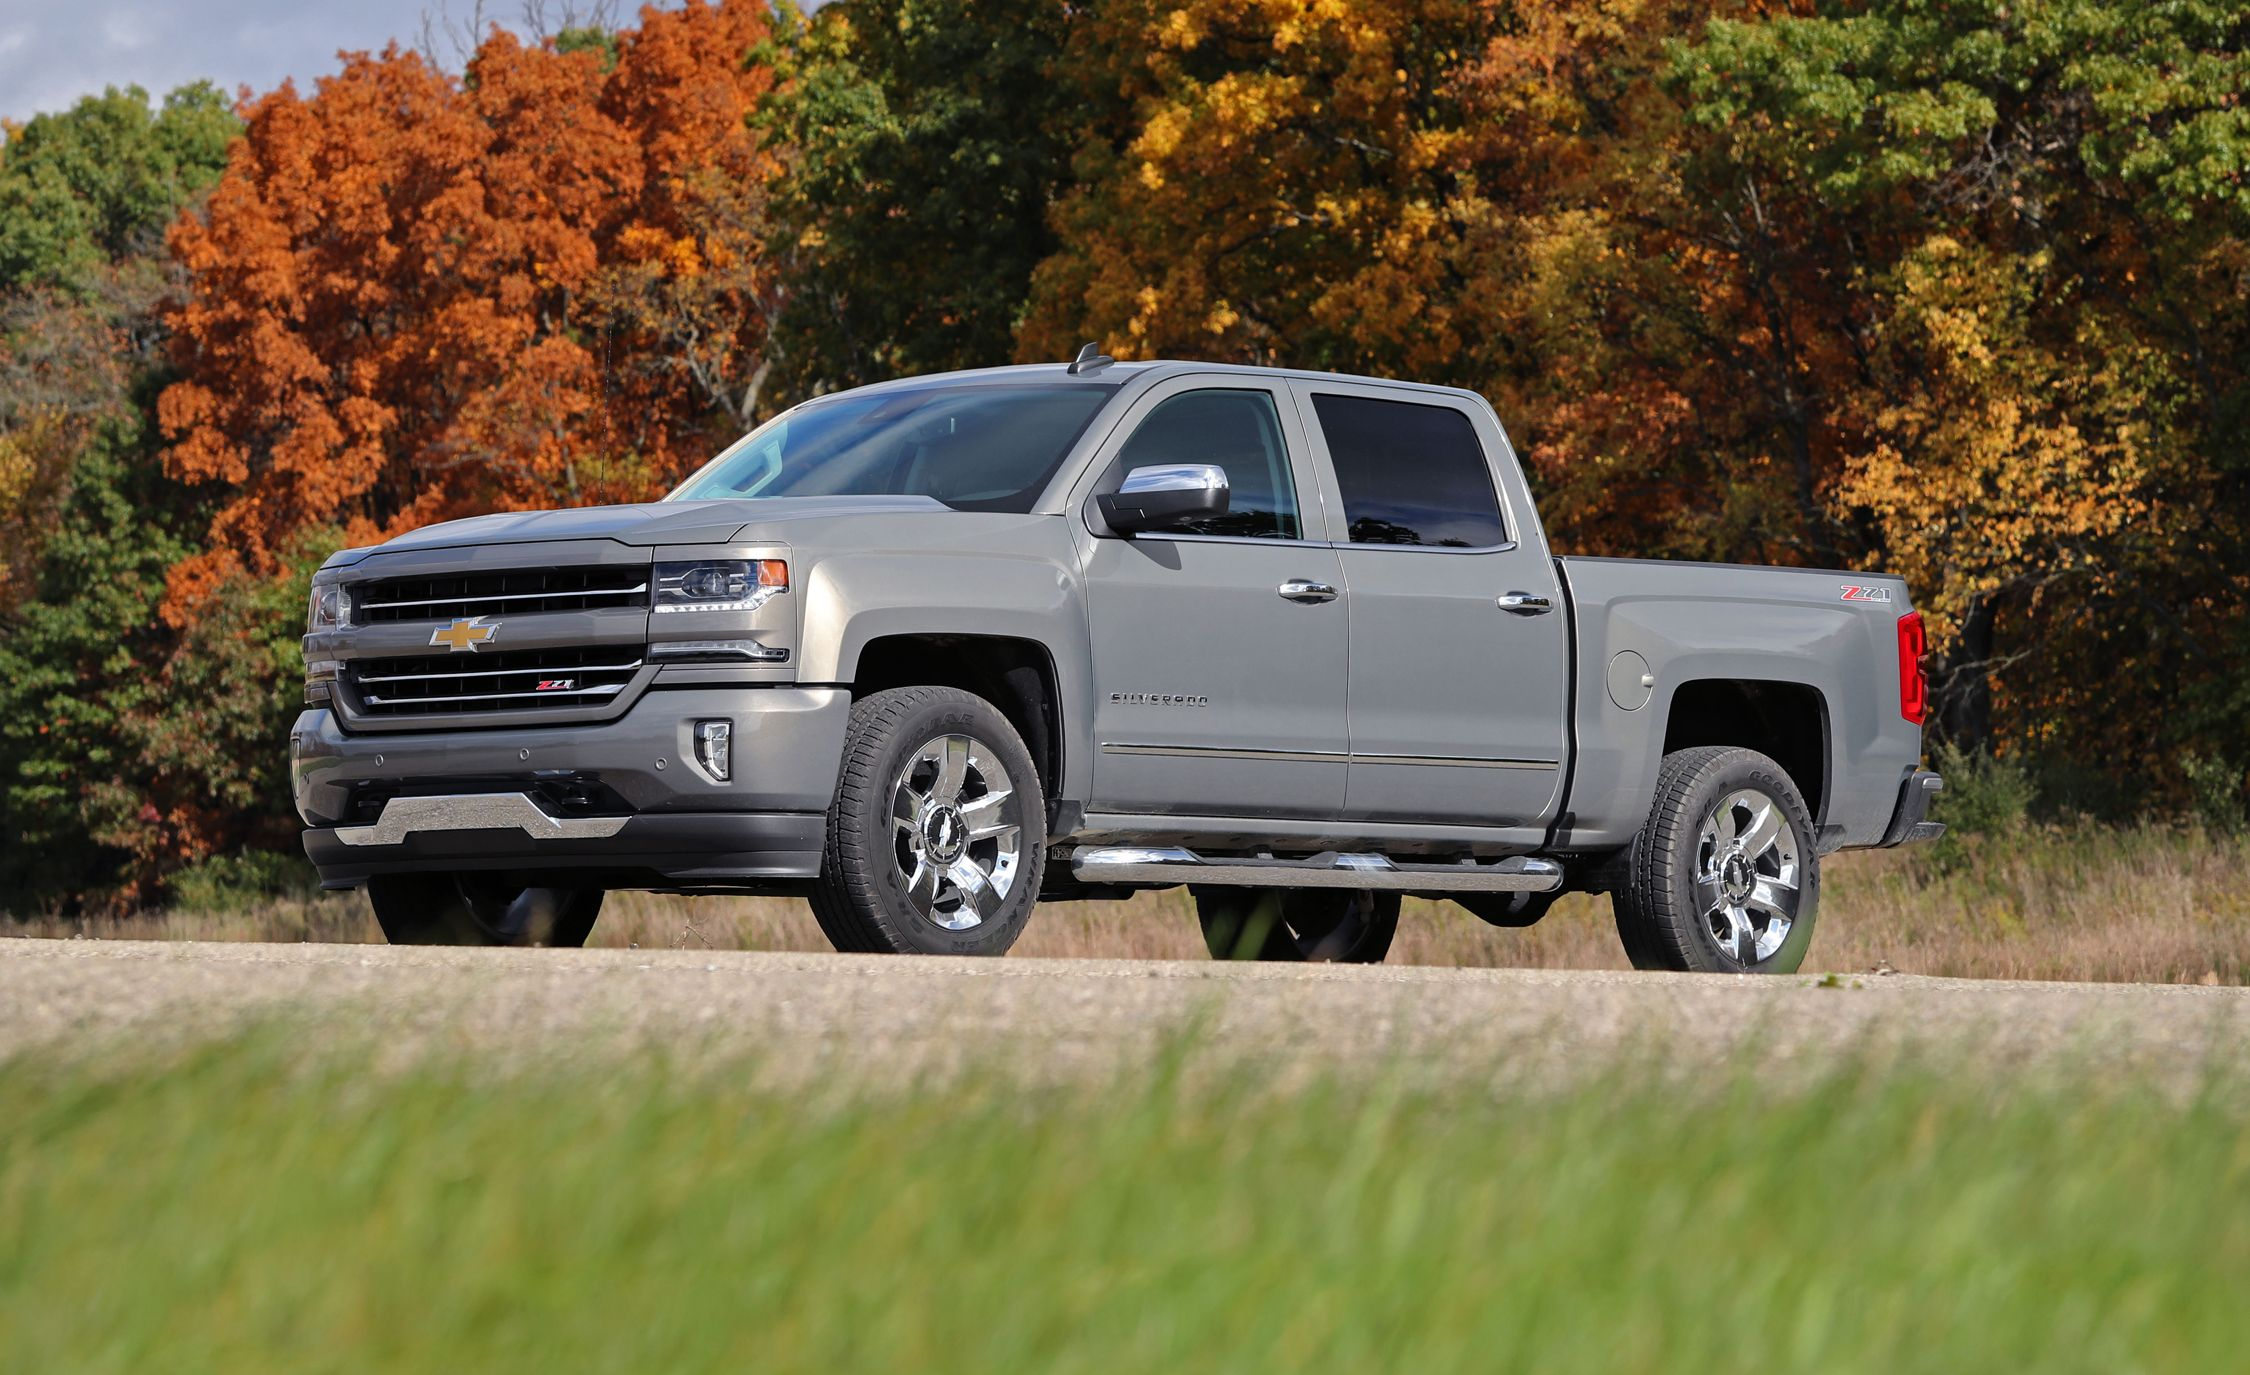 2018 Chevy Silverado Midnight Edition Price 2019 2020 Upcoming Cars